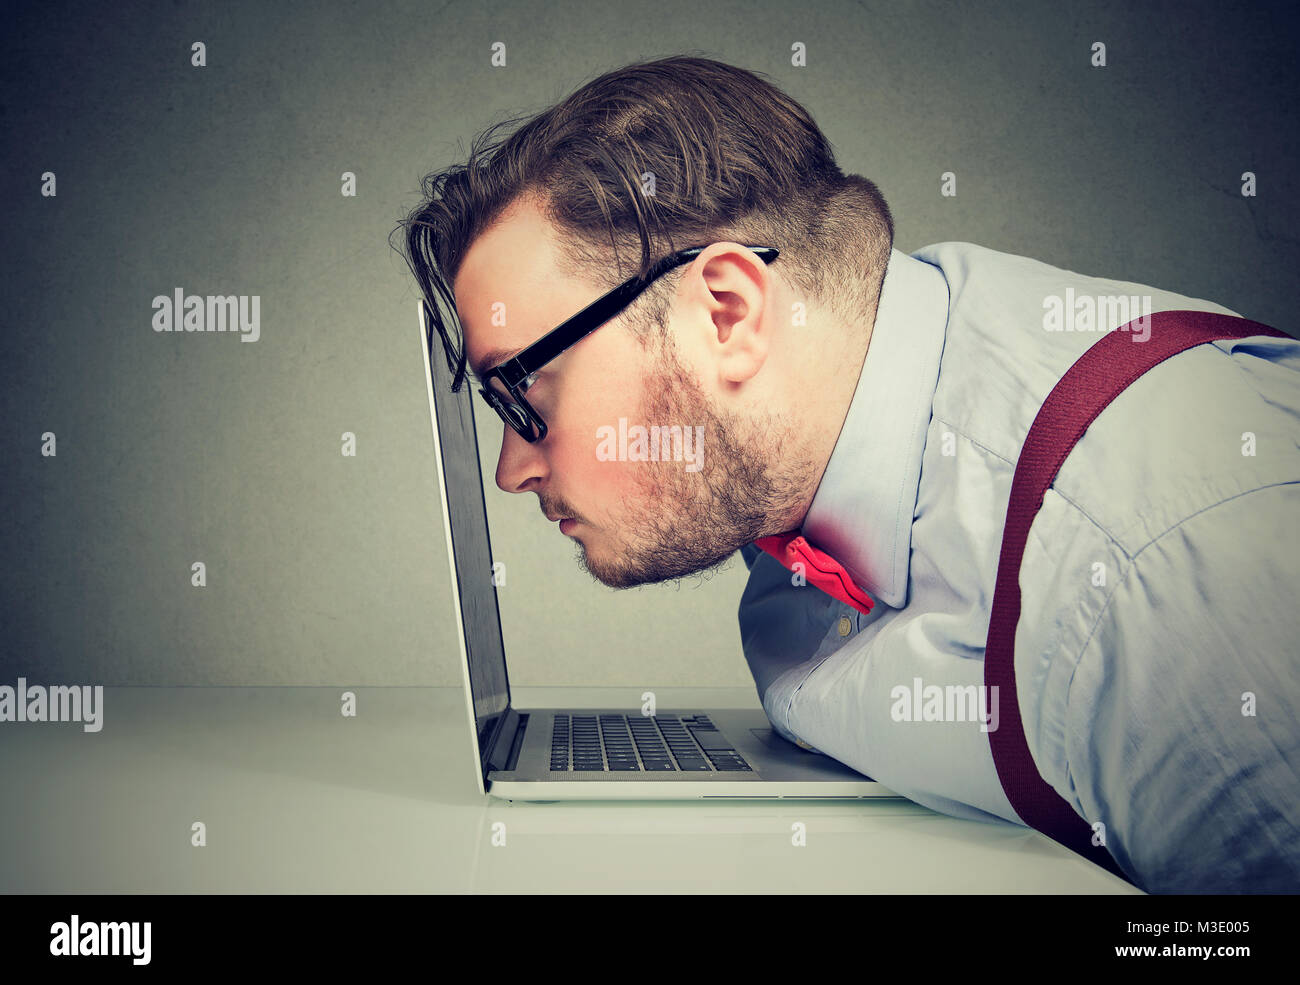 Side view of chunky man with bad vision having sedentary way of work and looking unmotivated. - Stock Image